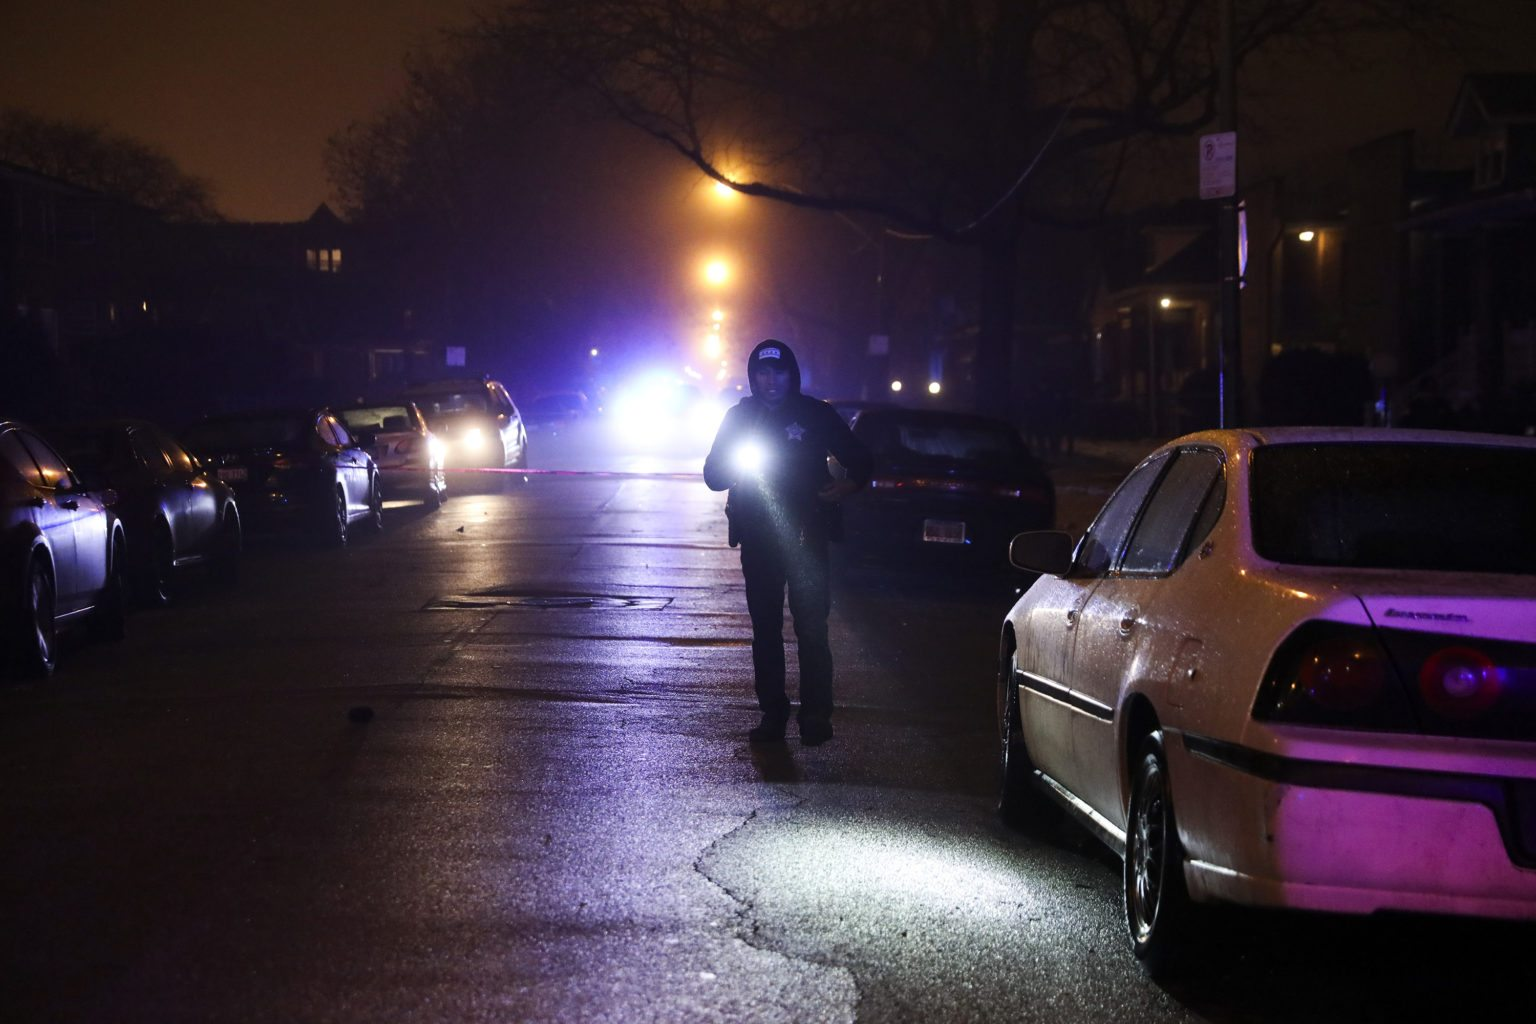 A member of the Chicago Police Department works the scene where at least six people were shot, one fatally, on the 8600 block of South Maryland Avenue Sunday, Dec. 25, 2016 in Chicago. (Armando L. Sanchez/Chicago Tribune/TNS)